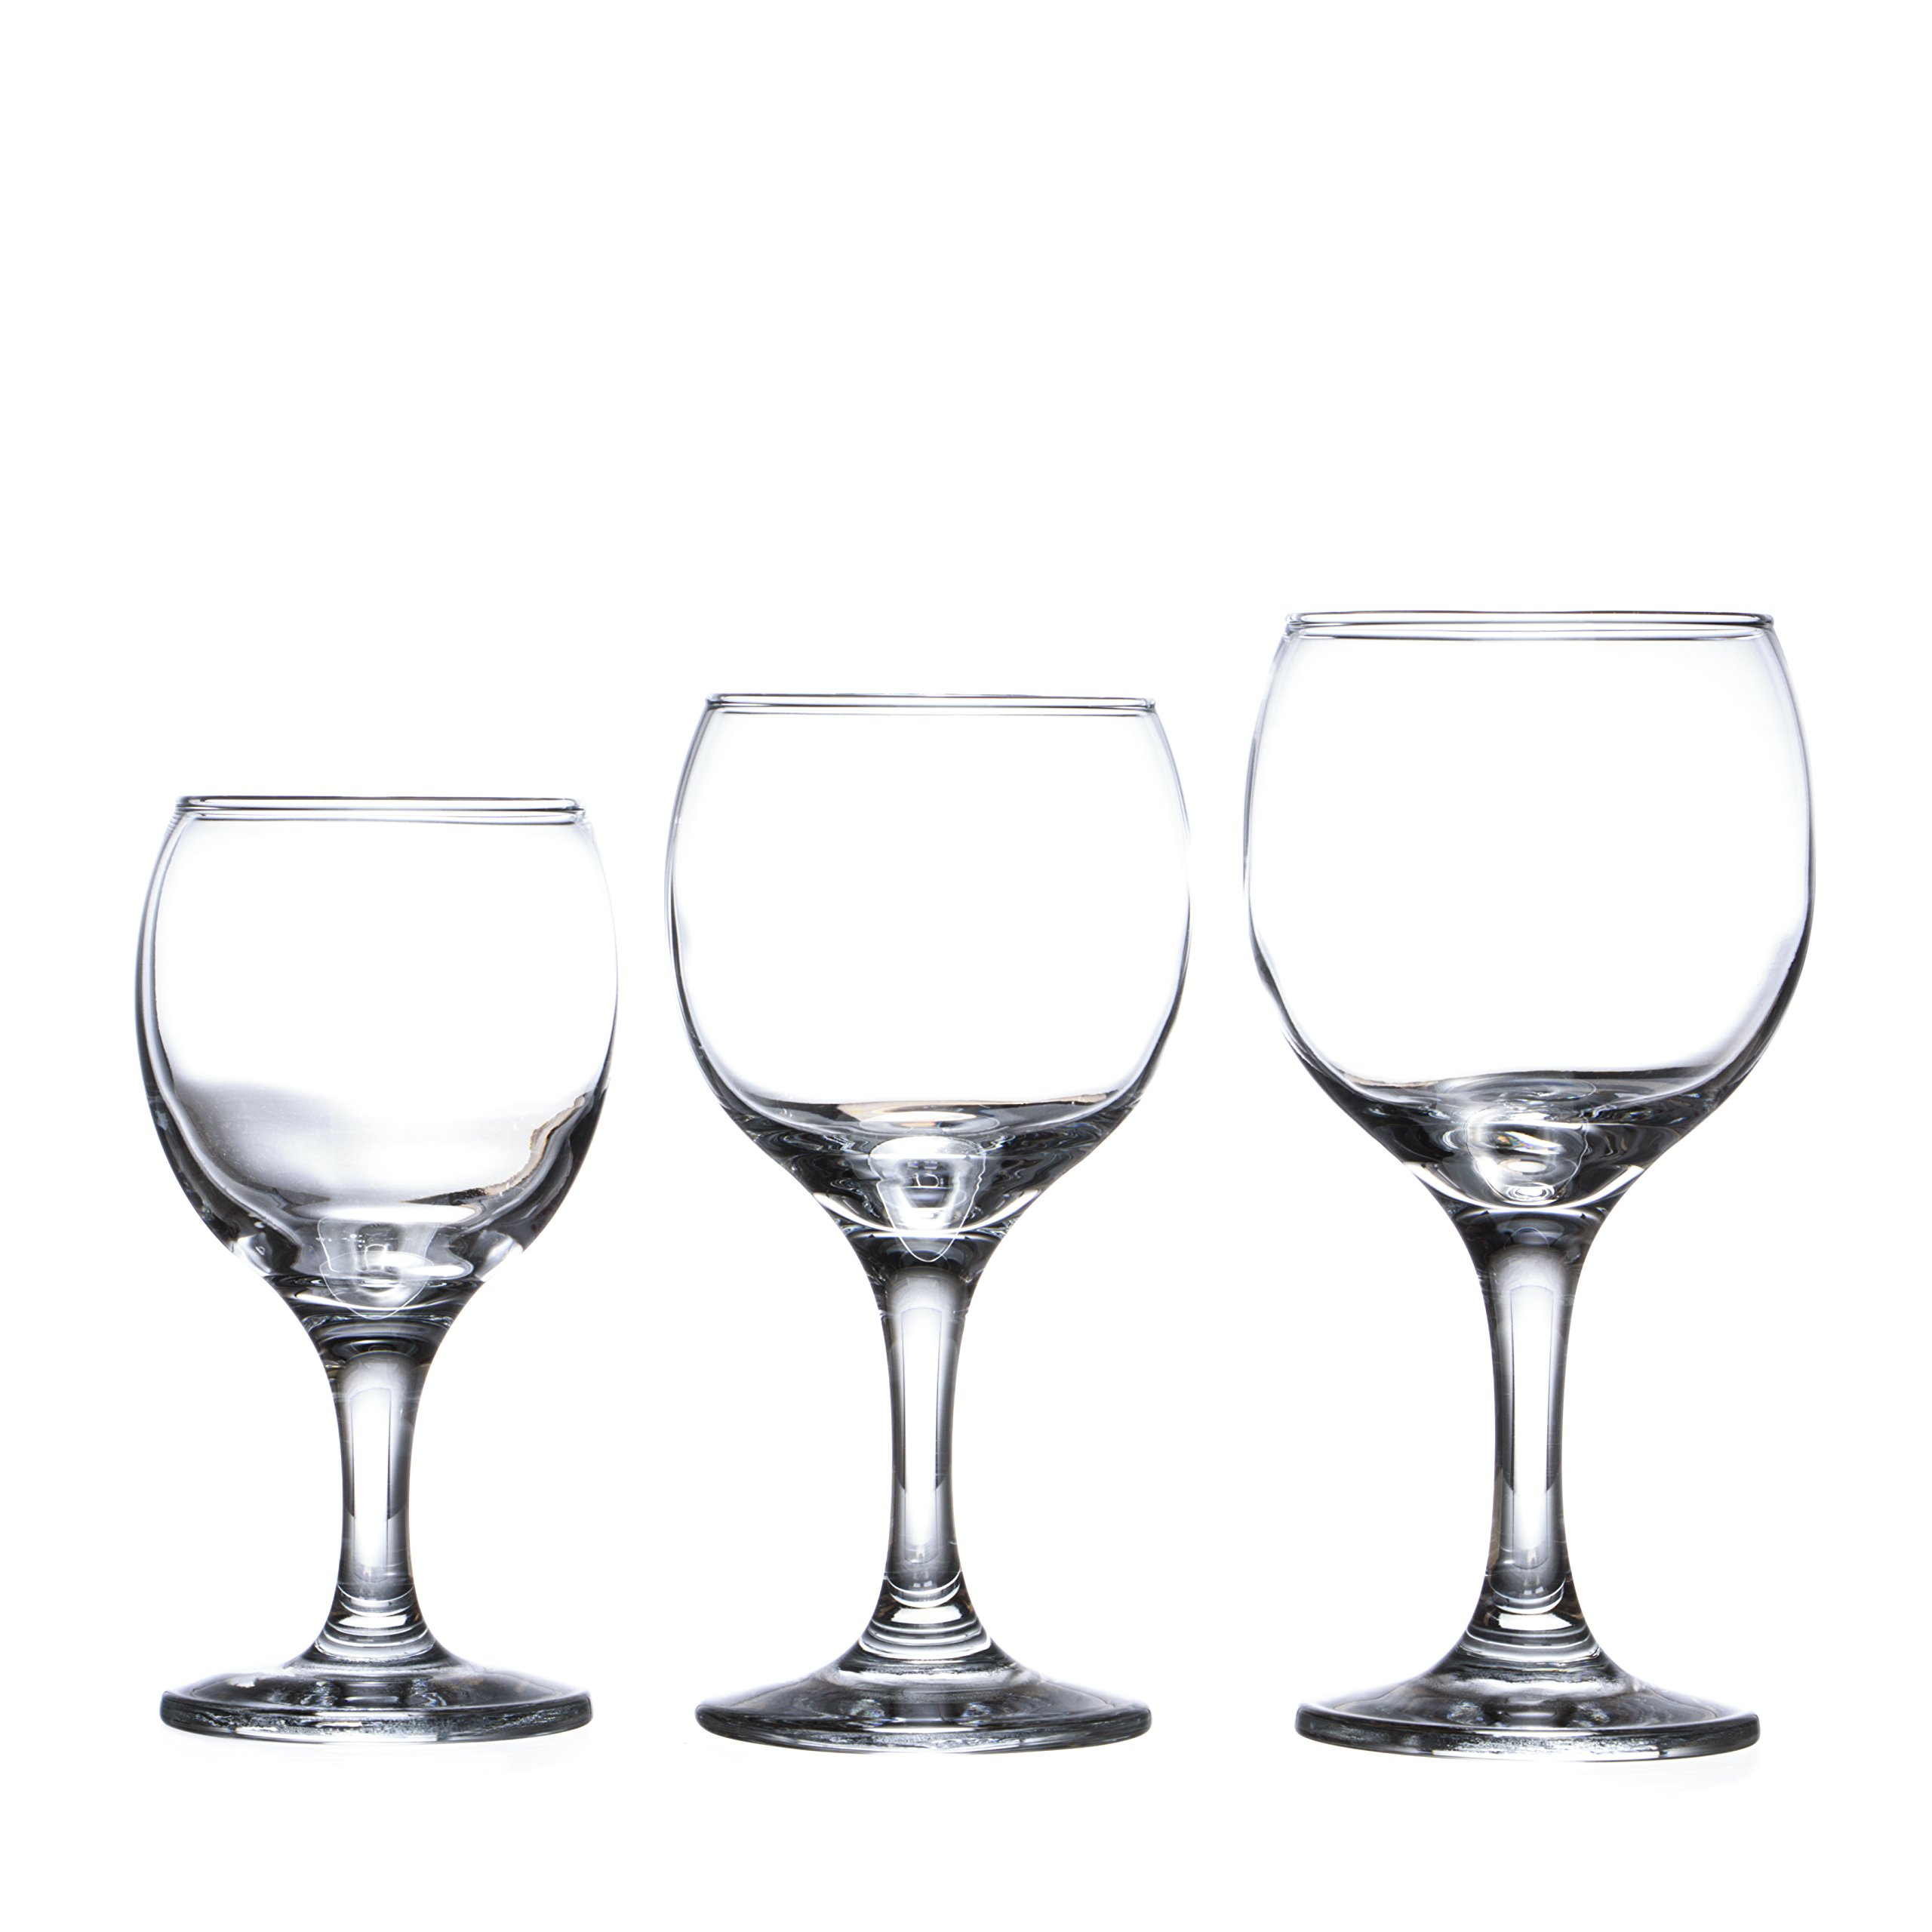 BISTRO 12-piece Wine Glasses Set (in 3 size), White, Red and Liquor Wine, Restaurant&Bar Quality, Durable Tempered Glass, Heavy Base, t.m. Pasabache (9 3/4 oz)